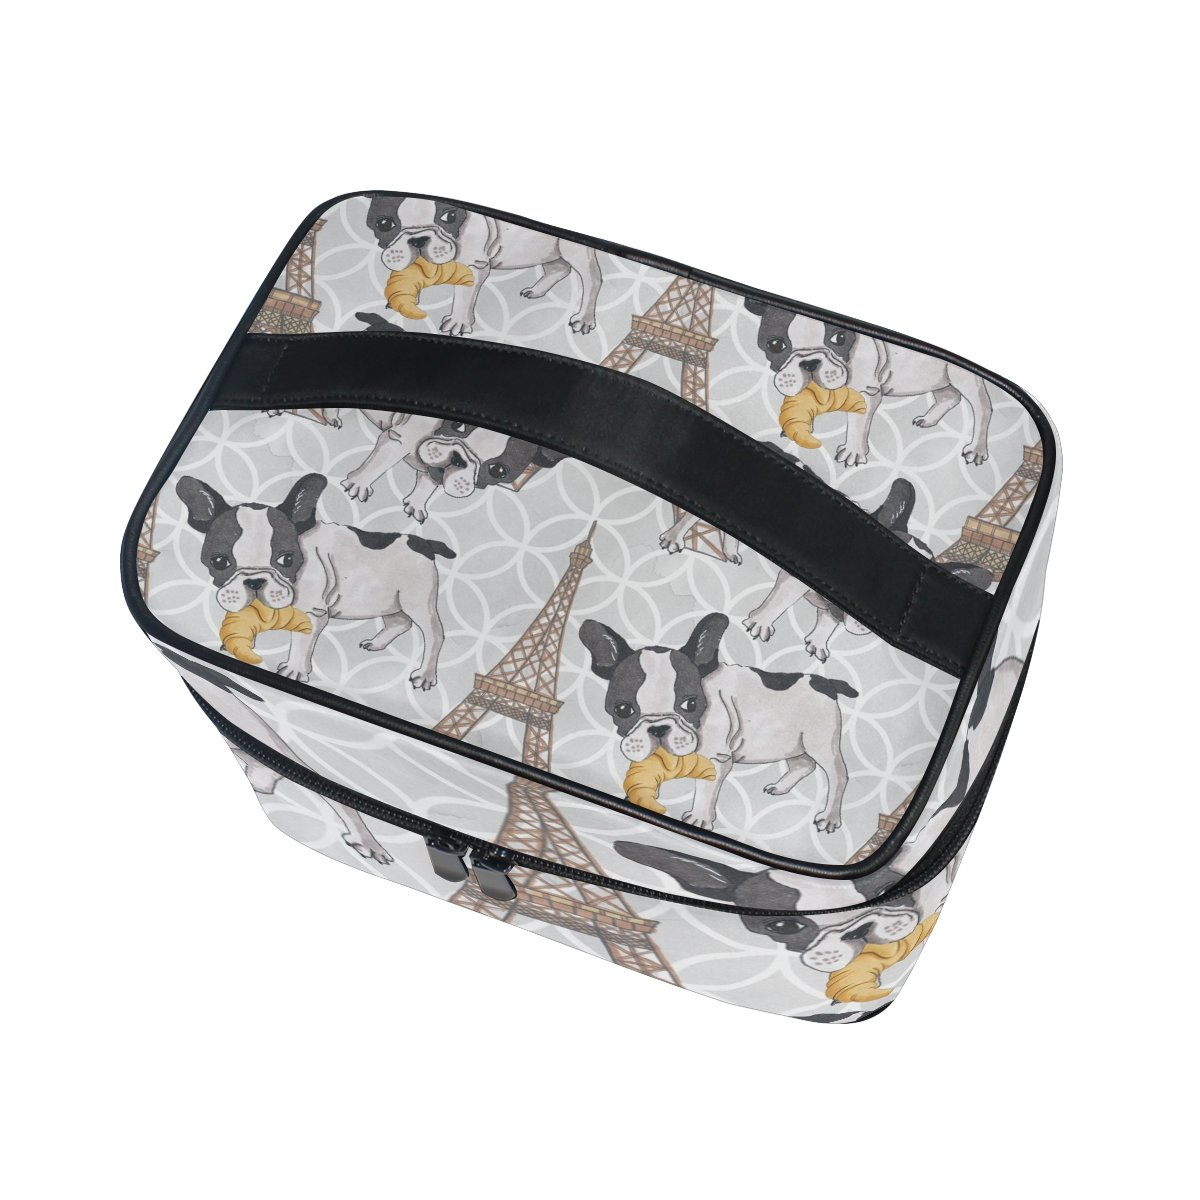 KUWT French Bulldog with Croissant in Eiffel Tower Women Travel Cosmetic Bag Portable Makeup Train Case Toiletry Bag Beauty Organizer